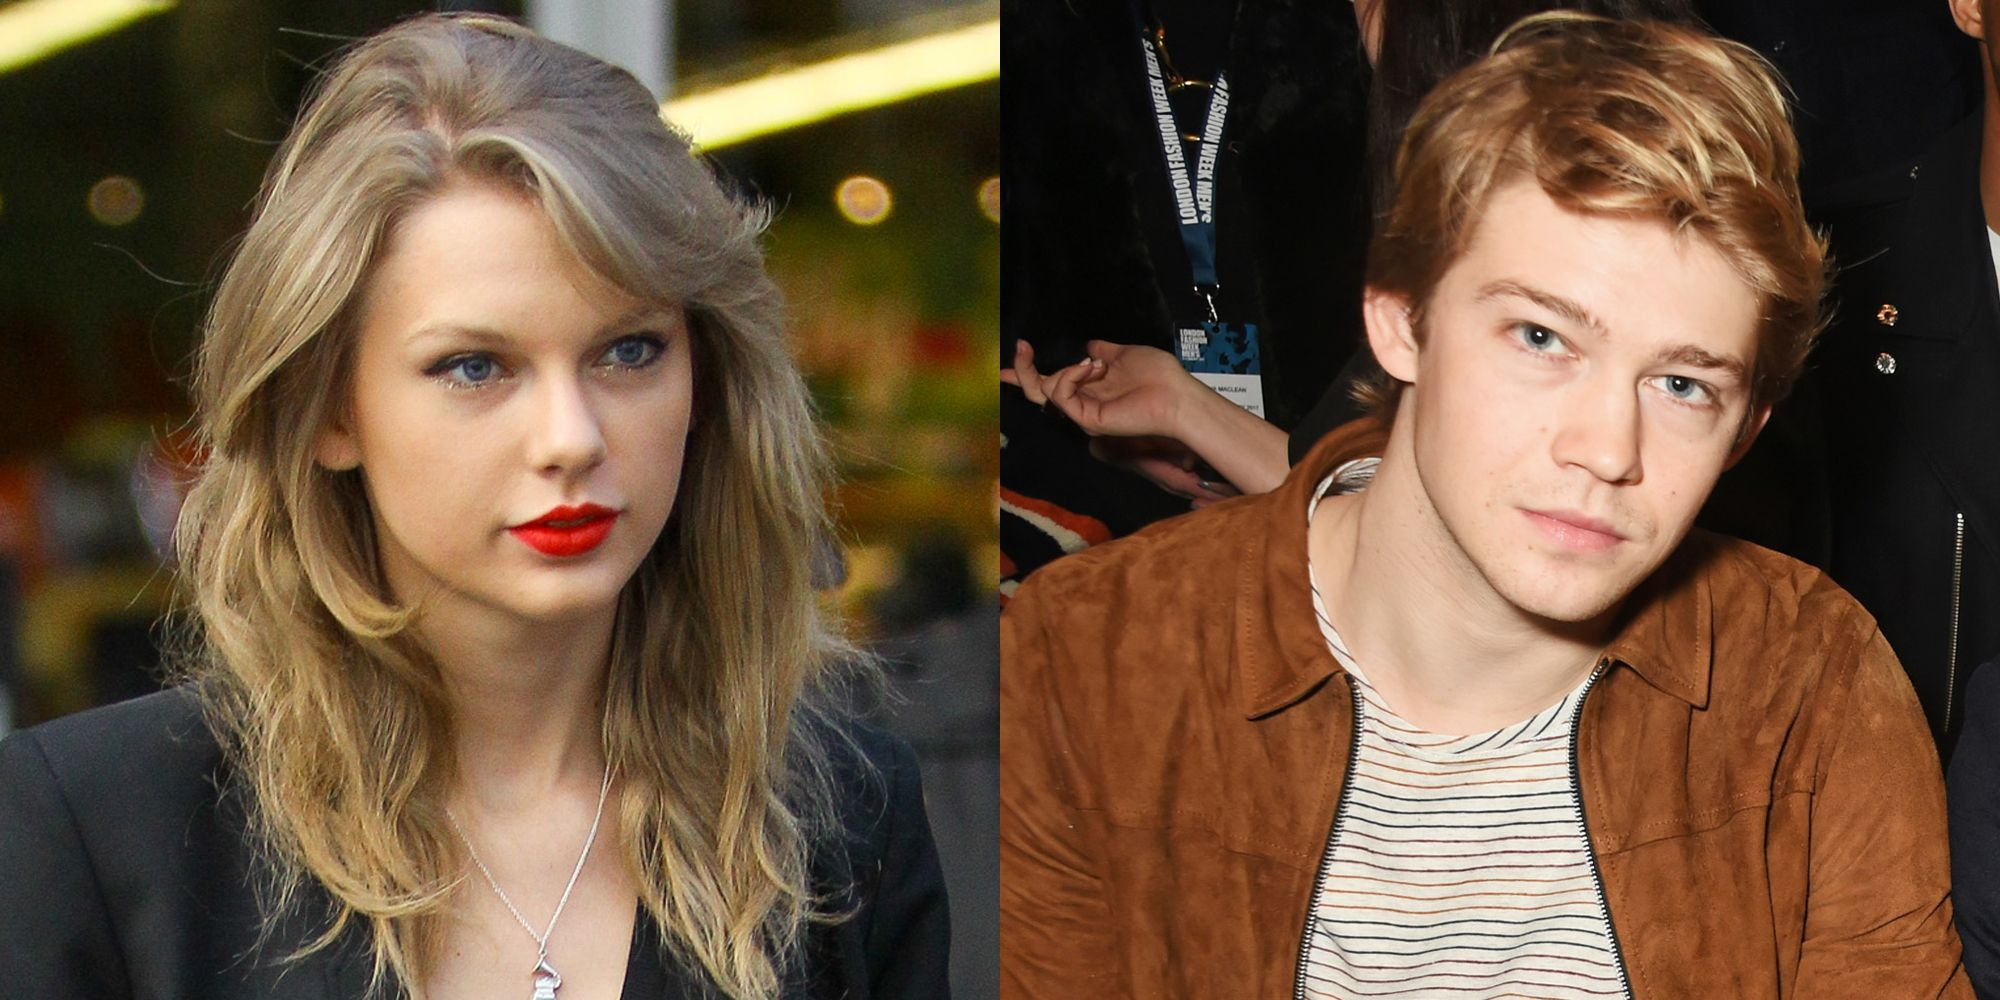 Taylor Swift Vacations With Joe Alwyn In Turks And Caicos For 4th Why Taylor Swift Didn T Have